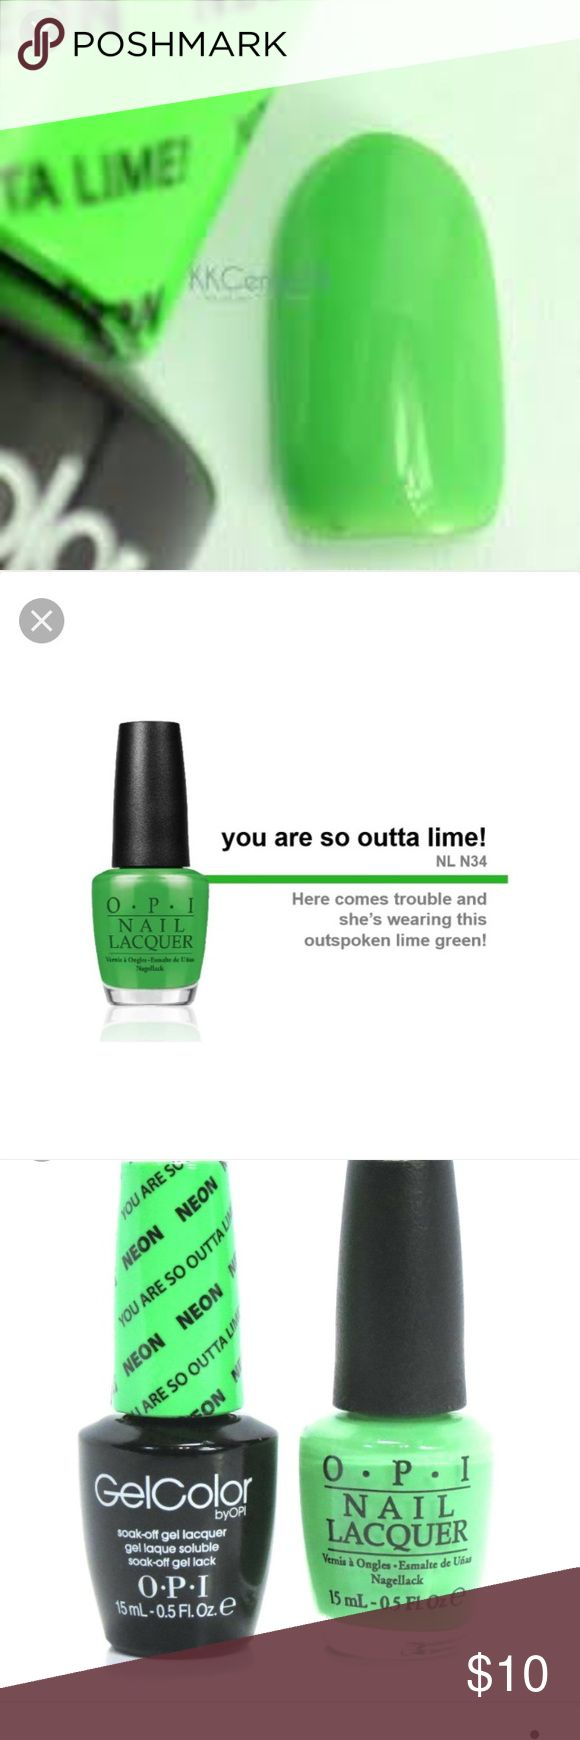 OPI Soak Off Gel Neon Green NEW You are so outta Lime! Is the color, kinda a neon but more toned down. I was looking for a different shade. Only used once. The OPI Gel Nail Polish is part of the OPI Gel Nail Polish collection also known as the OPI Axxium Soak Off Gel Nail Collection. The OPI Gel Nail Polish is made to last the minimum of two weeks. Use with a UV nail light, OPI soak-off gel base and OPI soak-off gel sealer. Made in USA. opi Makeup